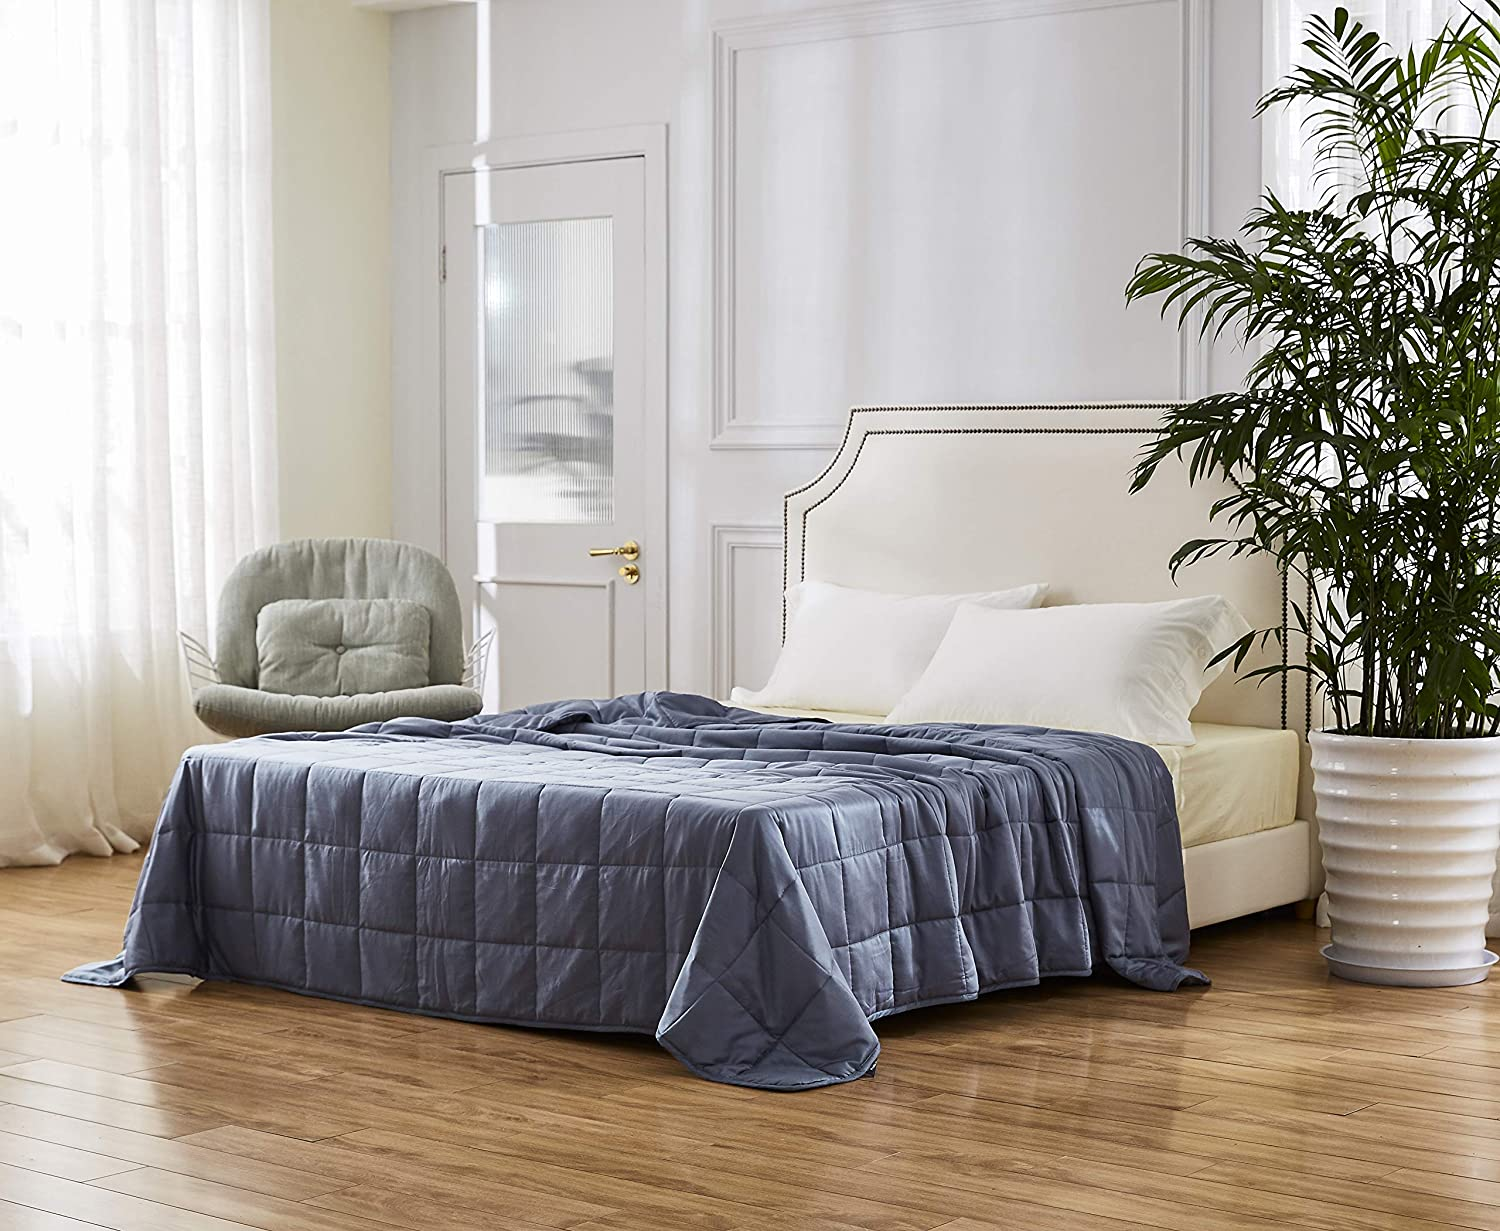 HomeSmart Products Queen Size Cooling Weighted Blanket - 20lbs 80x86 - The Only True Queen Size Bamboo Cooling Weighted Comforter On The Market - Perfect for Couples